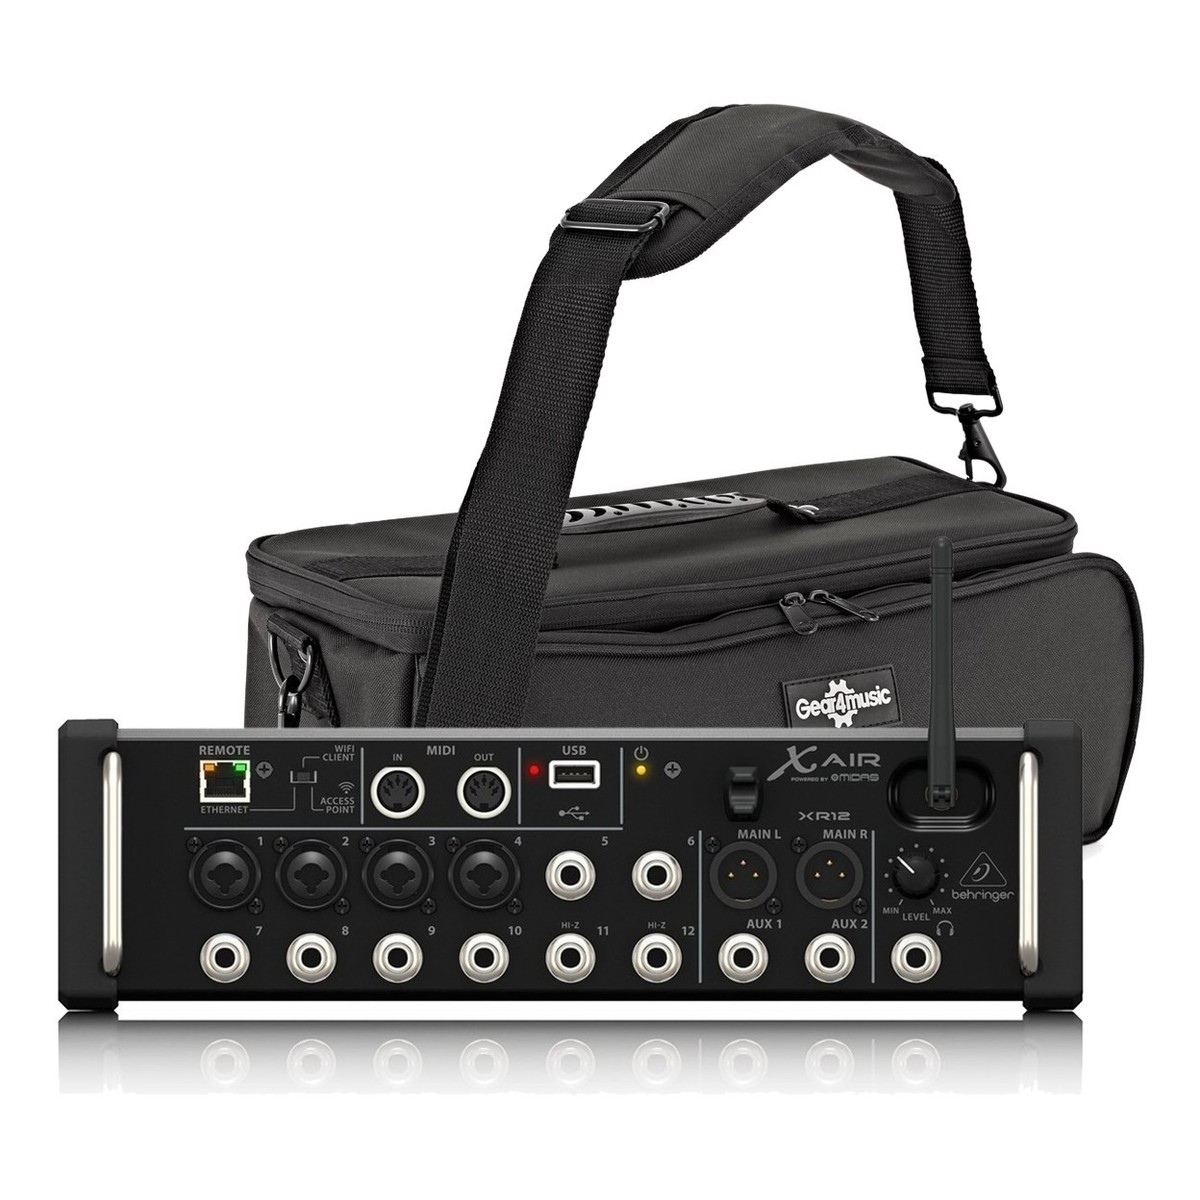 behringer x air xr12 12 channel digital mixer with padded bag at gear4music. Black Bedroom Furniture Sets. Home Design Ideas